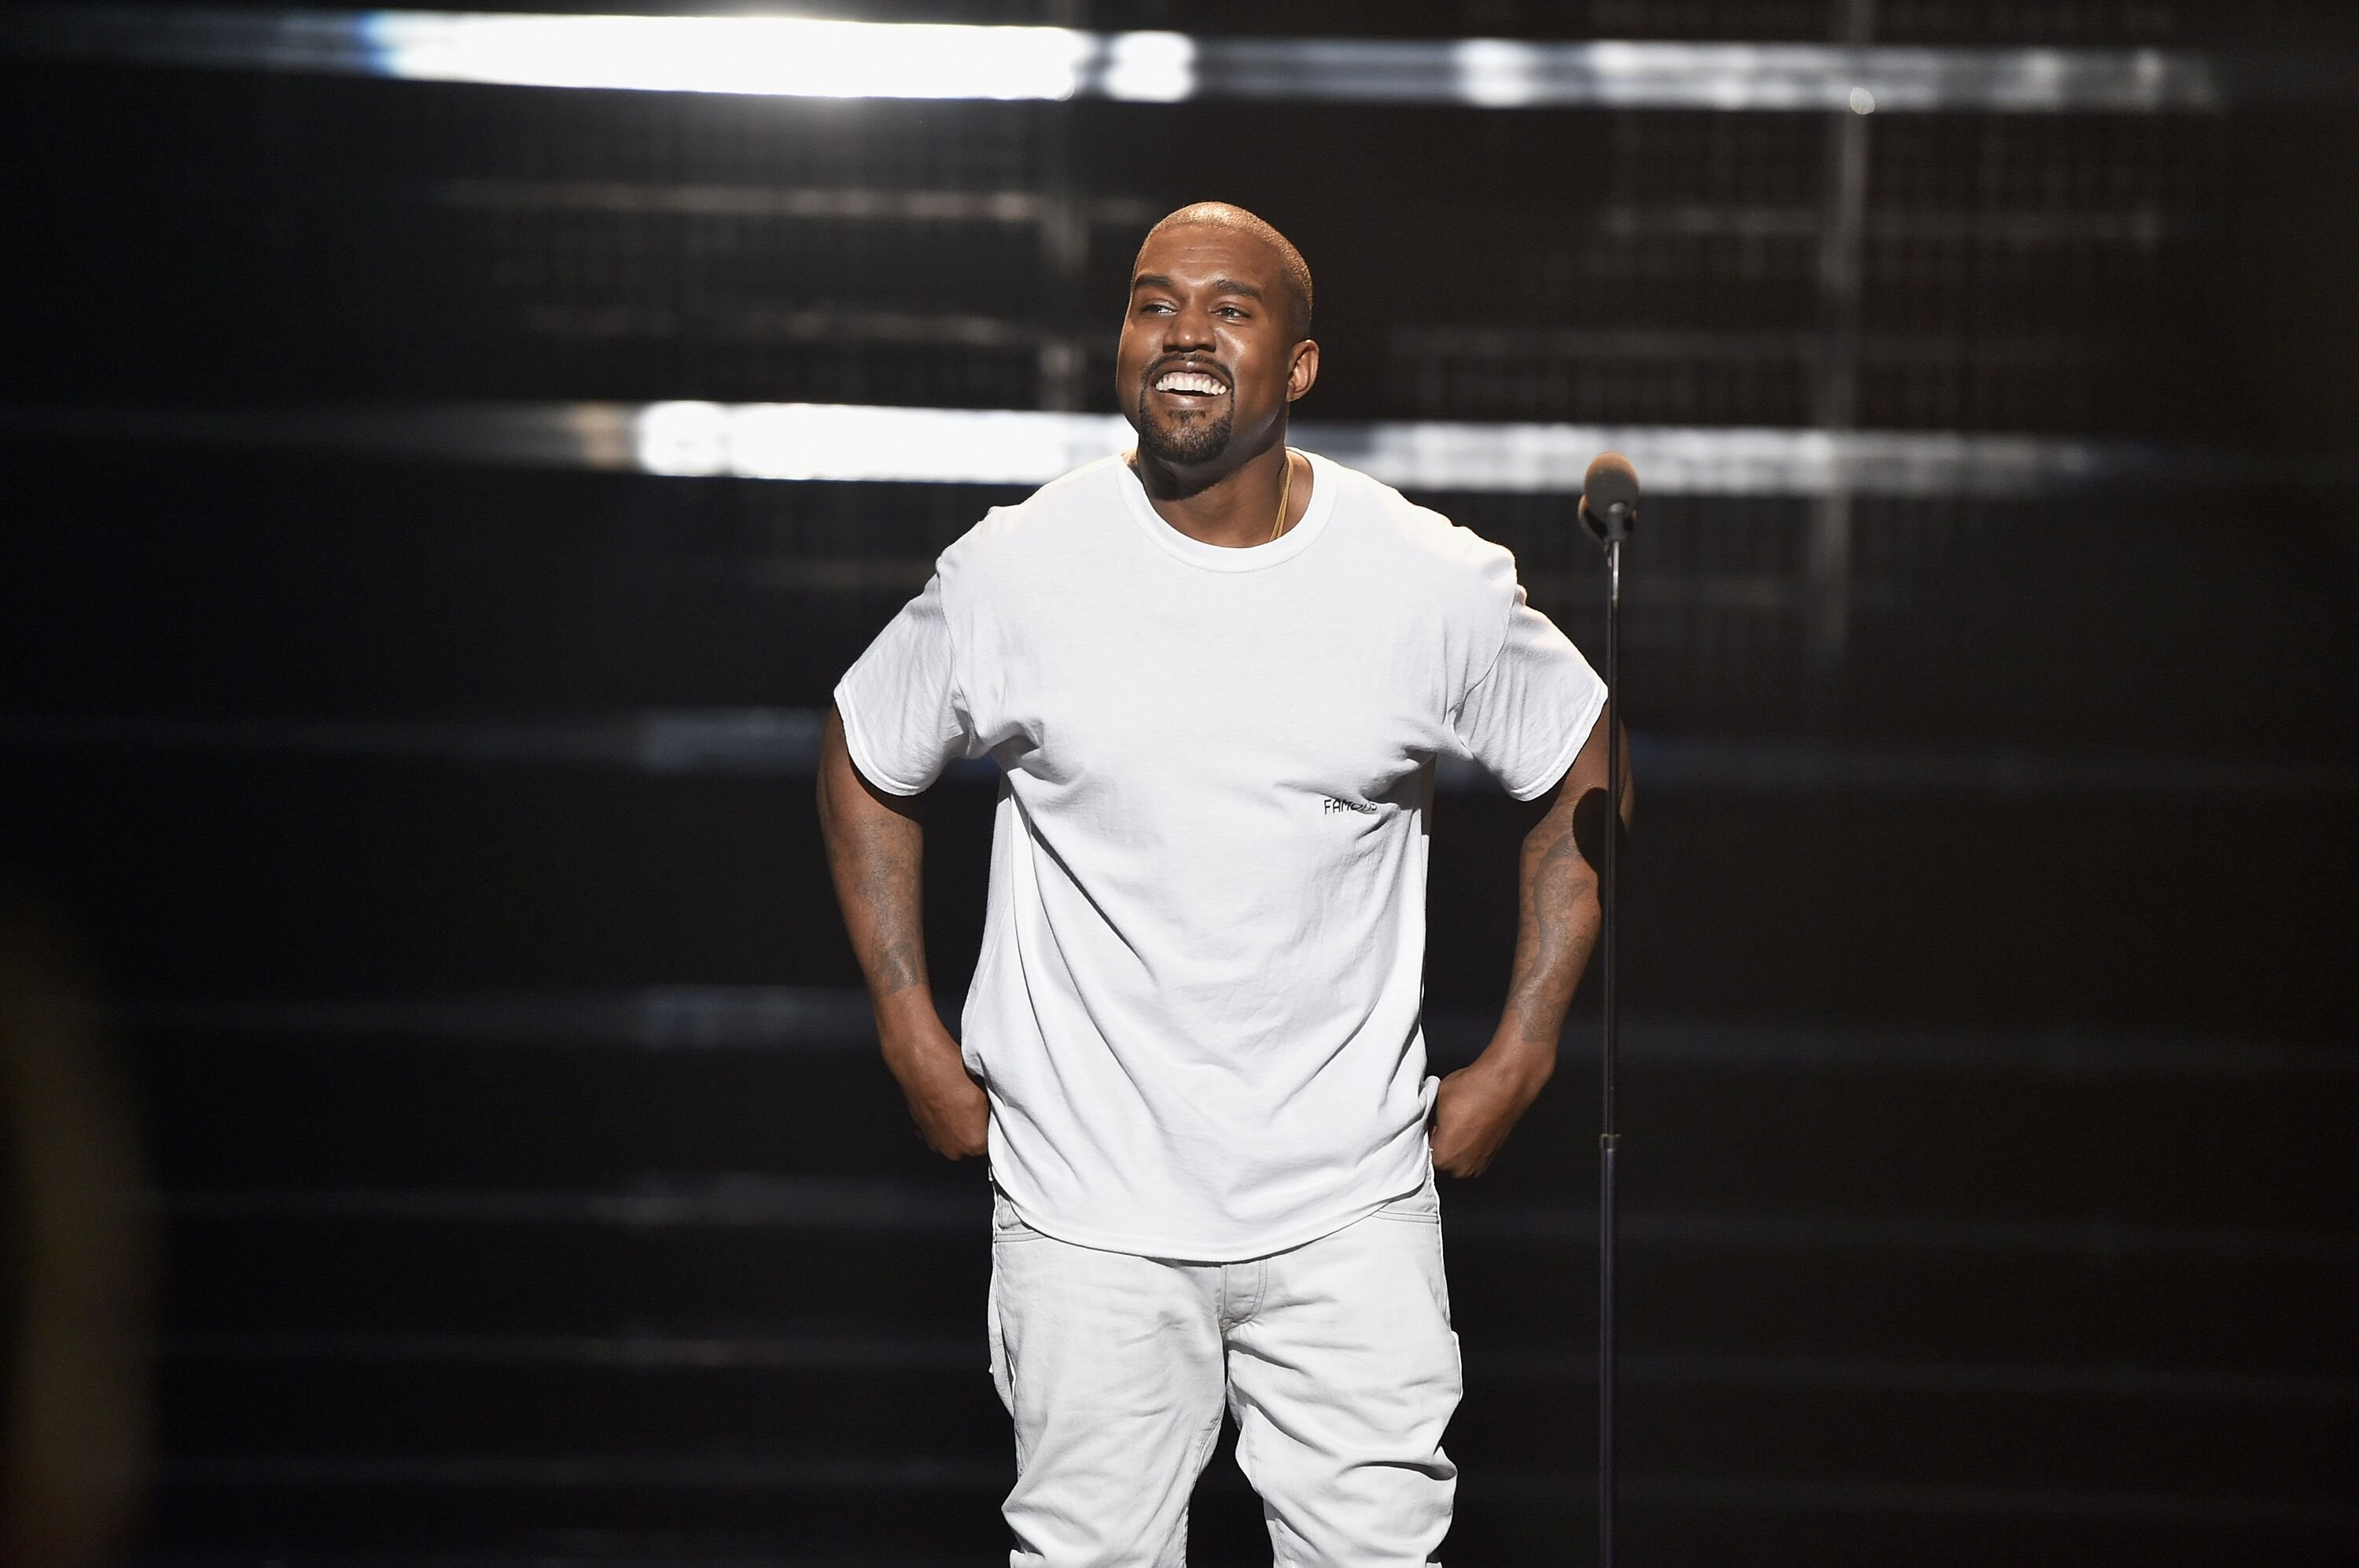 Kanye West dressed in all white | Source: Getty Images/GlobalImagesUkraine